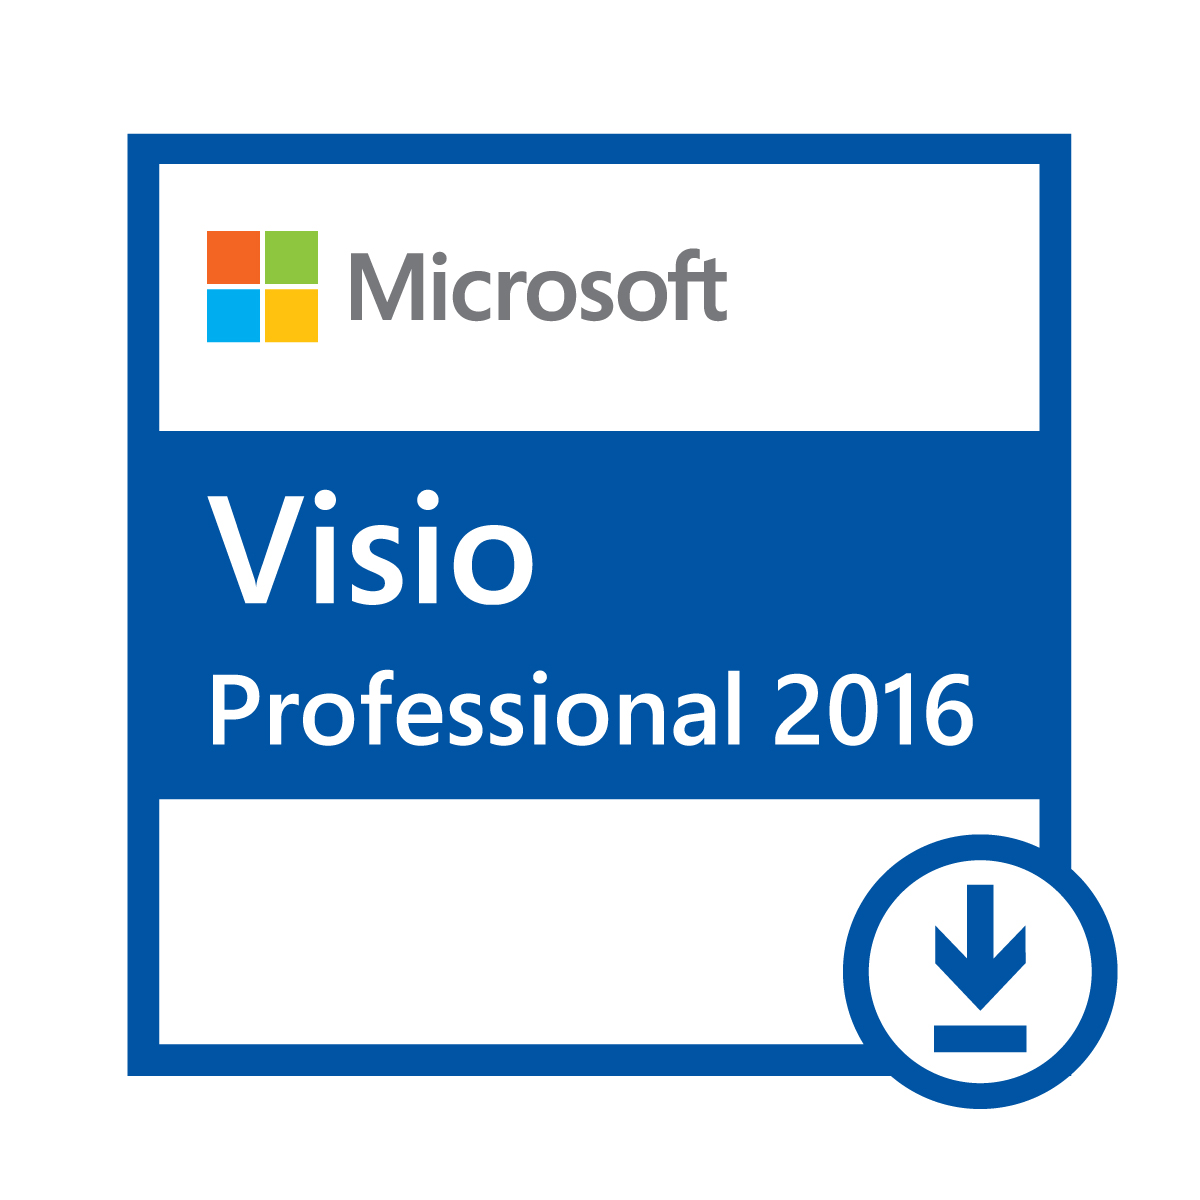 Visio Office Microsoft Visio Professional 2016 1 Msofficeworks Ms Office Works